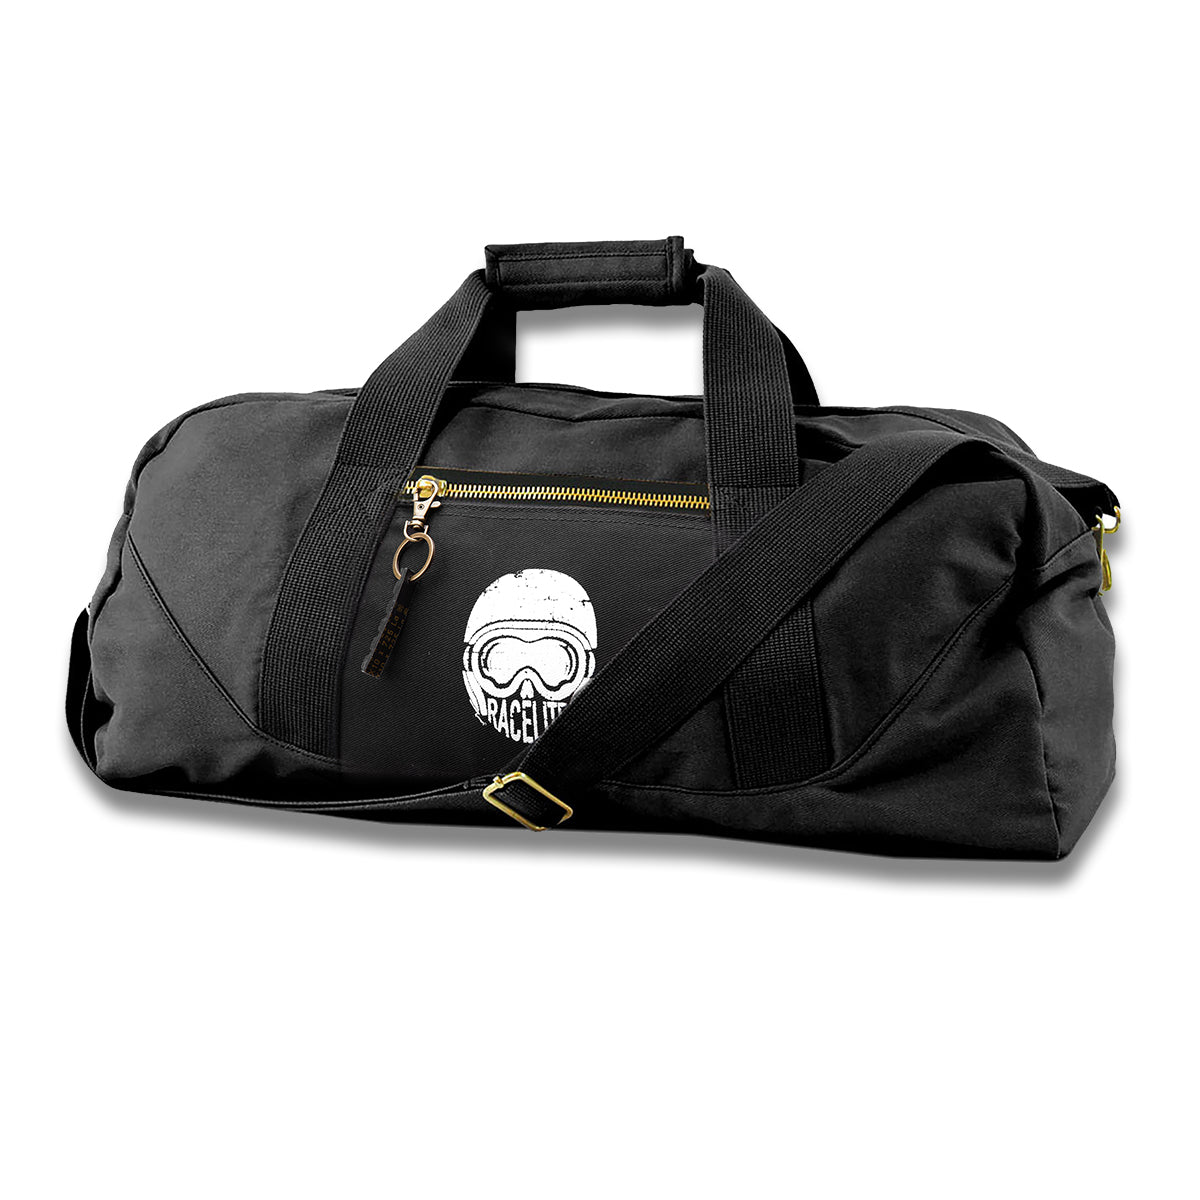 Racelite Designs Weekender Bag Product View 1